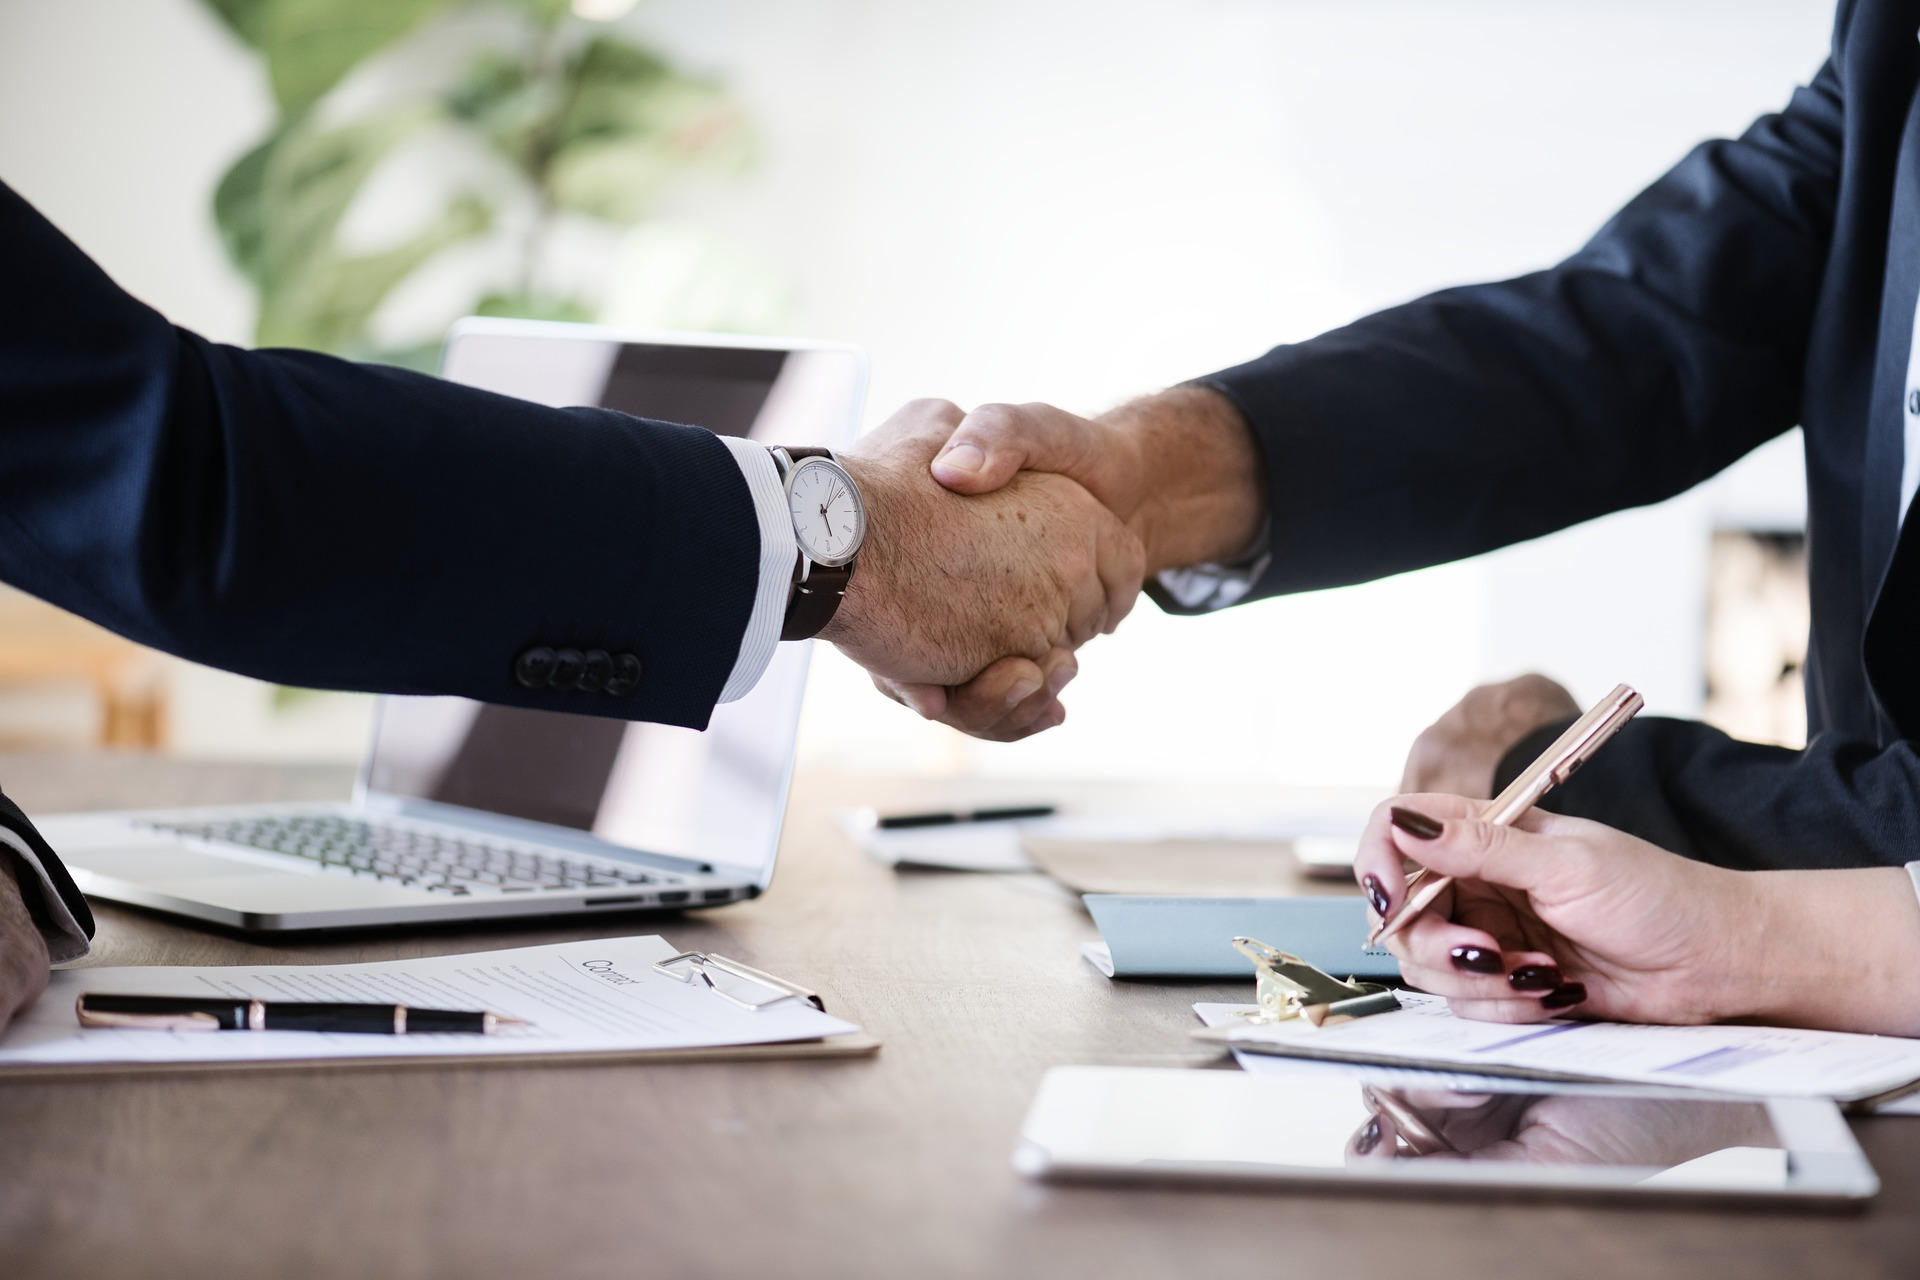 Two arms shaking opposite hands on top of a table with laptop, paper, and pen after a salary negotiation.